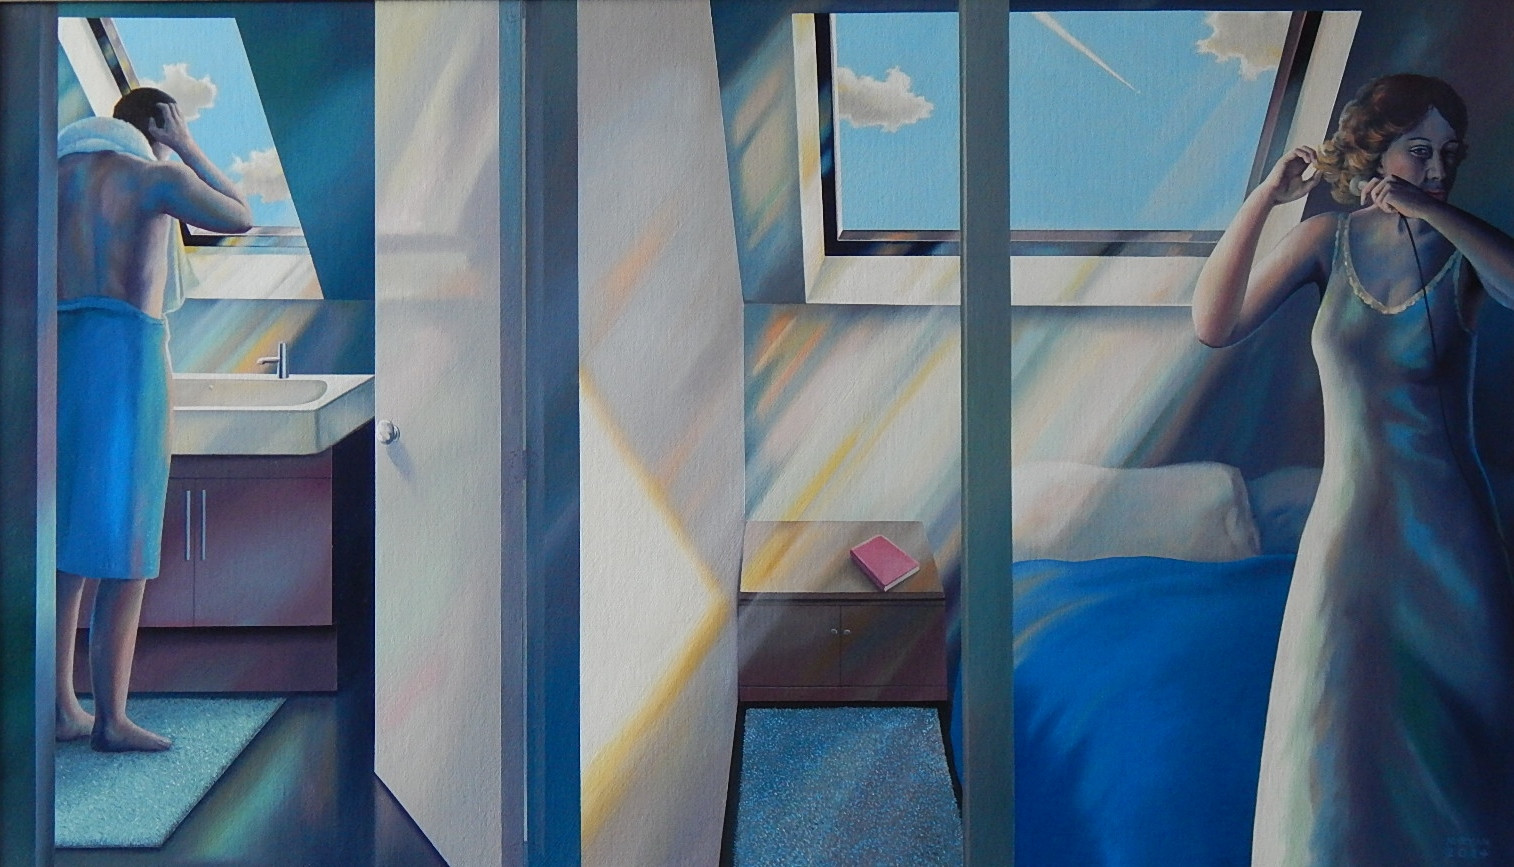 Two Roof Lights (2014)